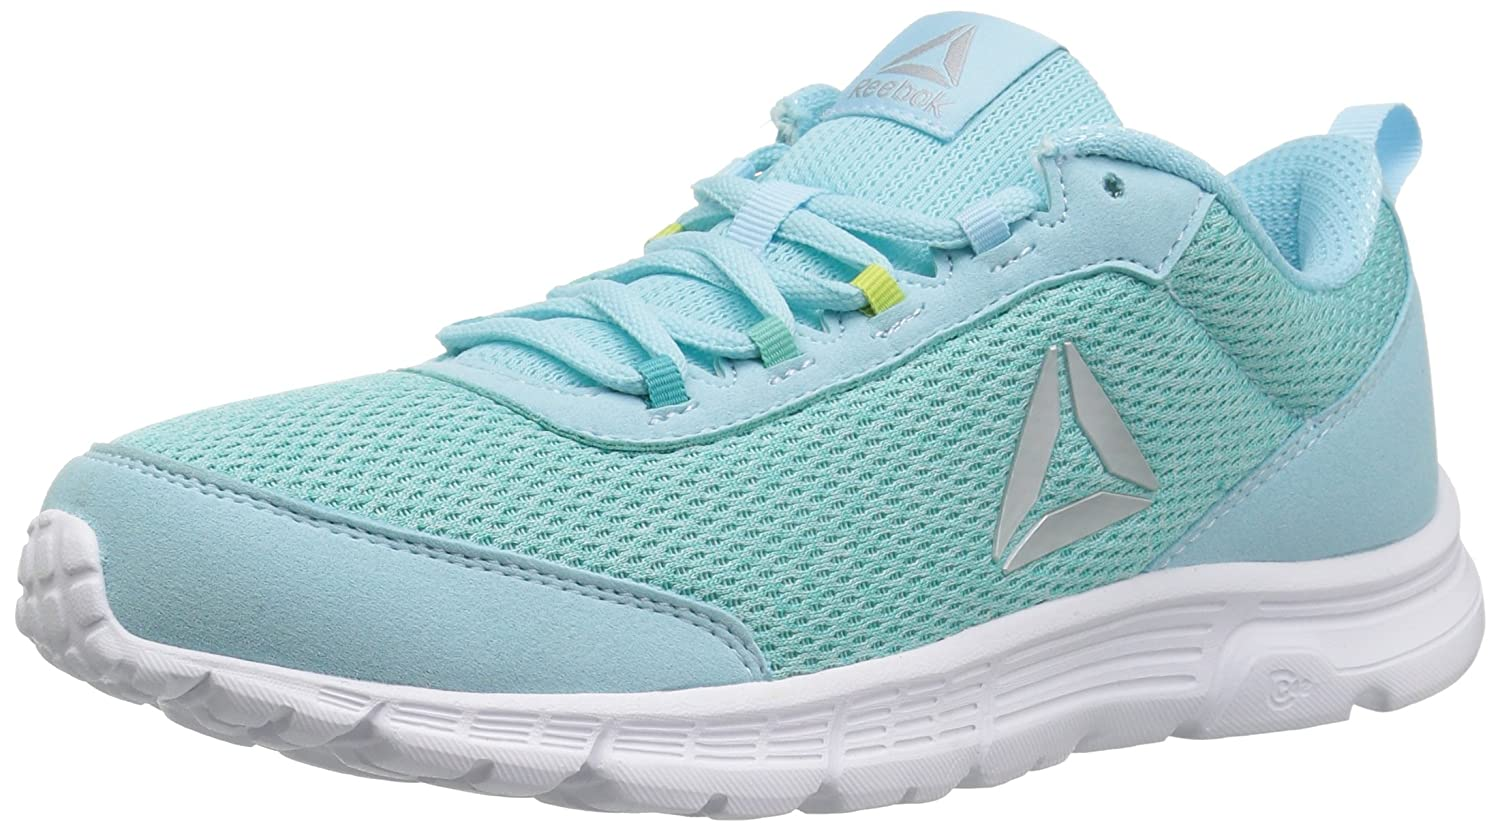 Reebok Women's Speedlux 3.0 Sneaker B073YDLTZ4 6.5 B(M) US|Blue Lagoon/Solid Teal/Electric Flash/White/Silver/Cool Shadow